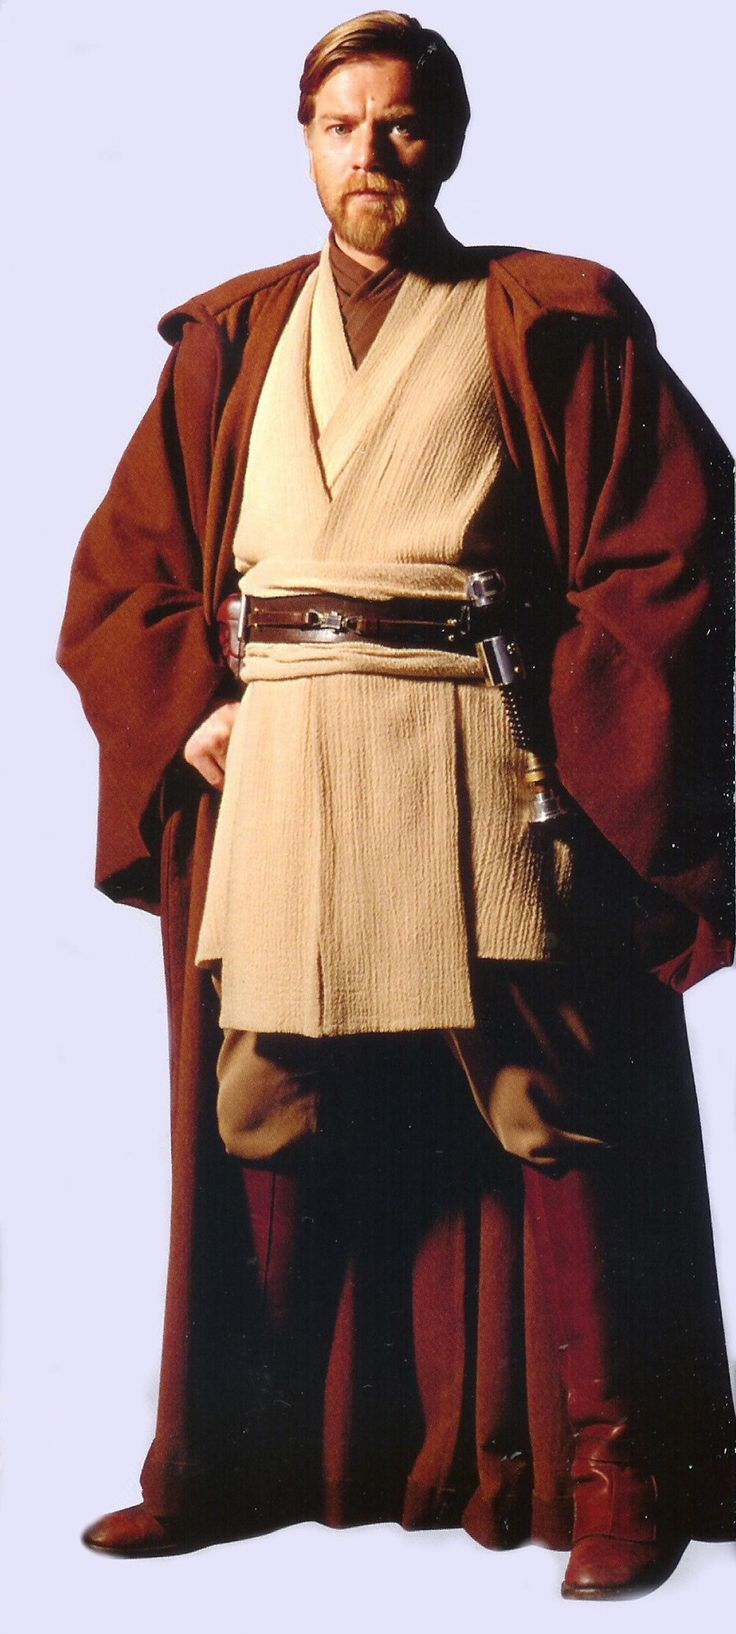 Obi Wan Kenobi Costumes Our selection of Official Licensed Obi-Wan Kenobi costumes are perfect for your next Star Wars party! Become the legendary Jedi hero from the Clone Wars or the ancient Jedi Master able to turn Luke Skywalker into the next generation of Jedi with costumes for adults and kids, and plenty of fun accessories that will make.